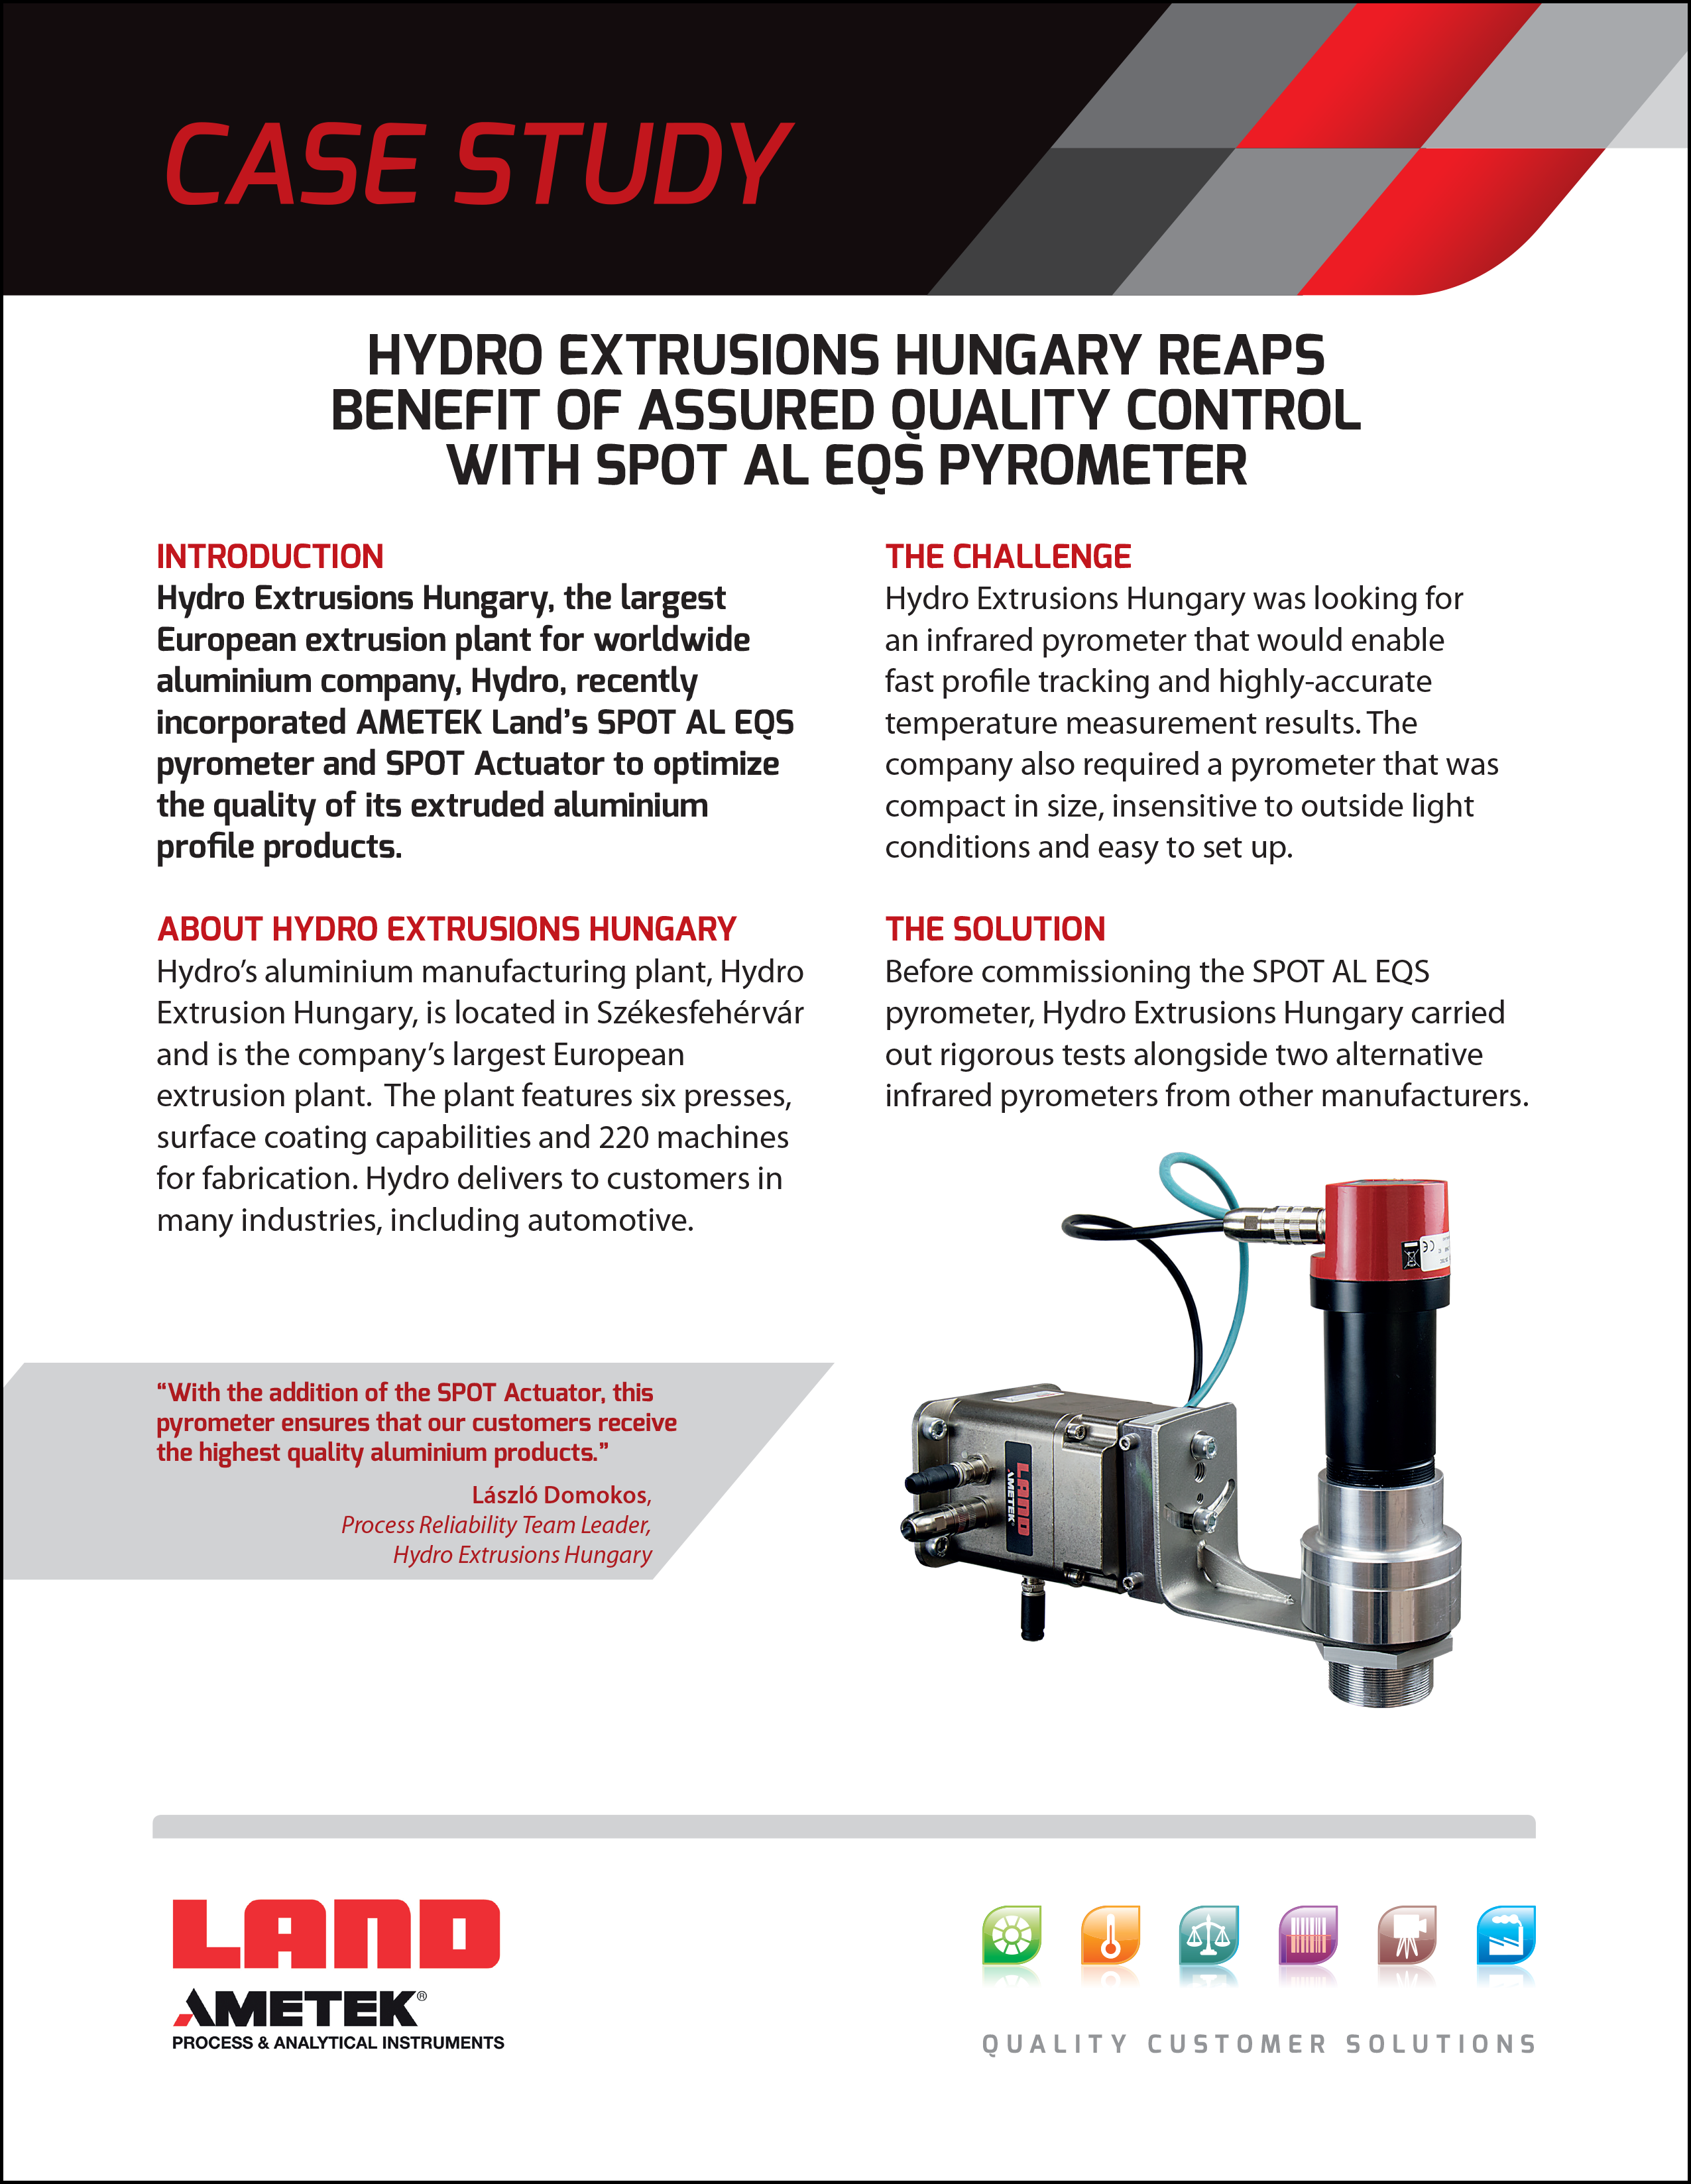 Hydro Extrusions Hungary - Case Study